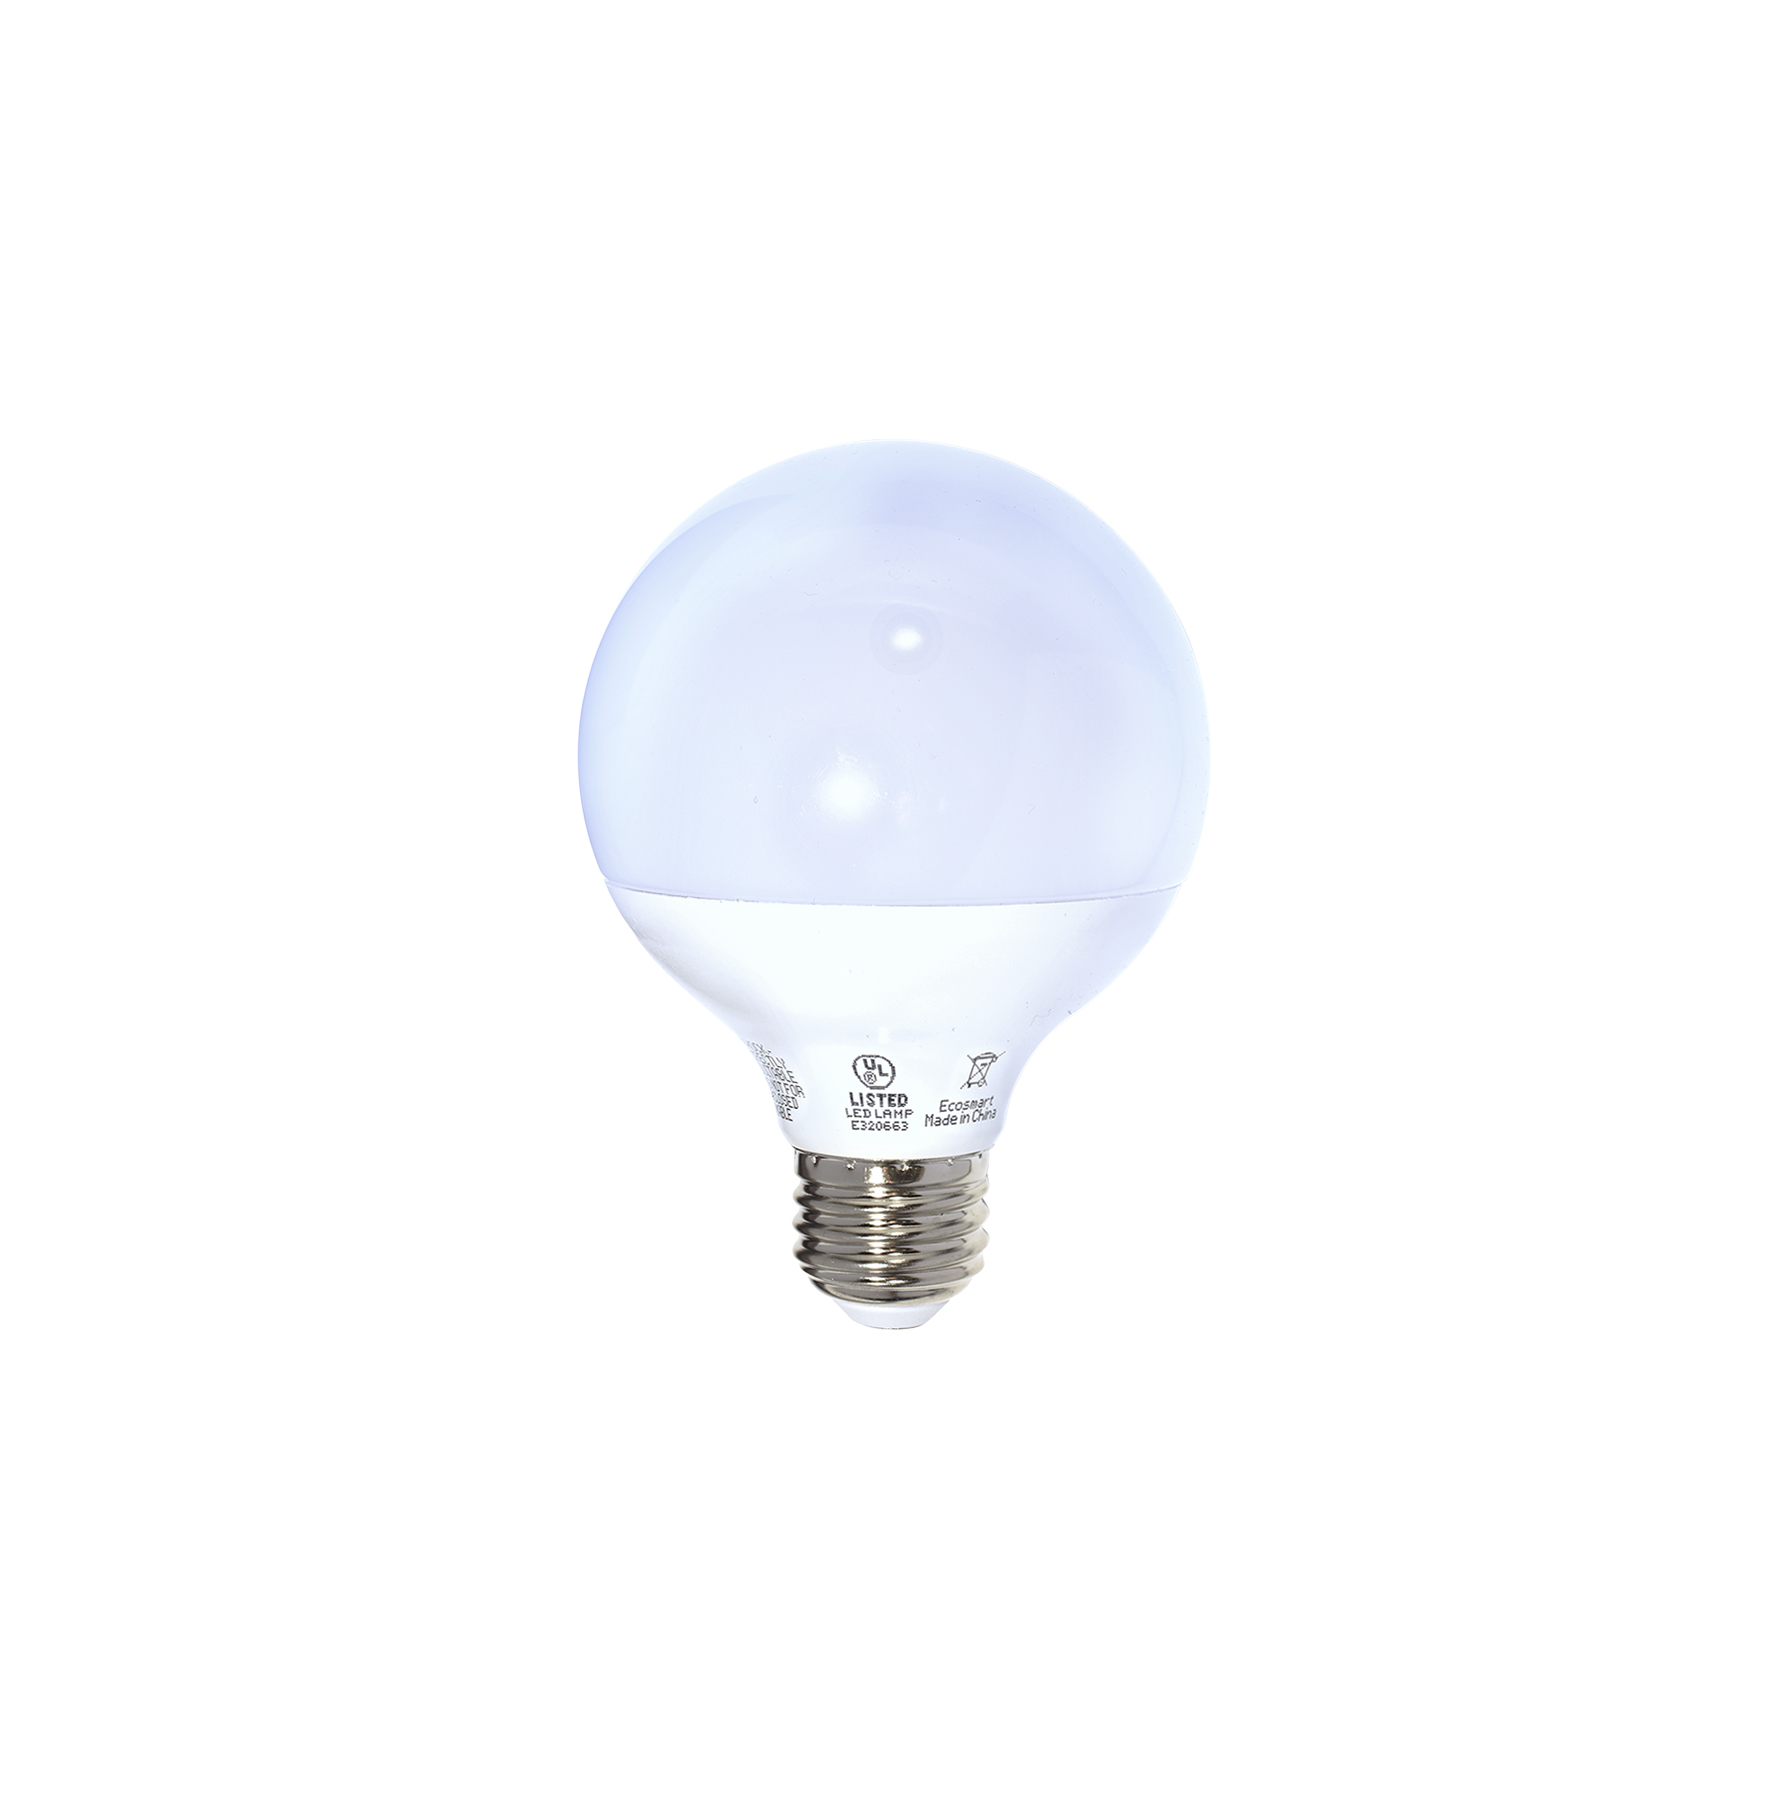 EcoSmart soft white G25 dimmable frosted LED bulb